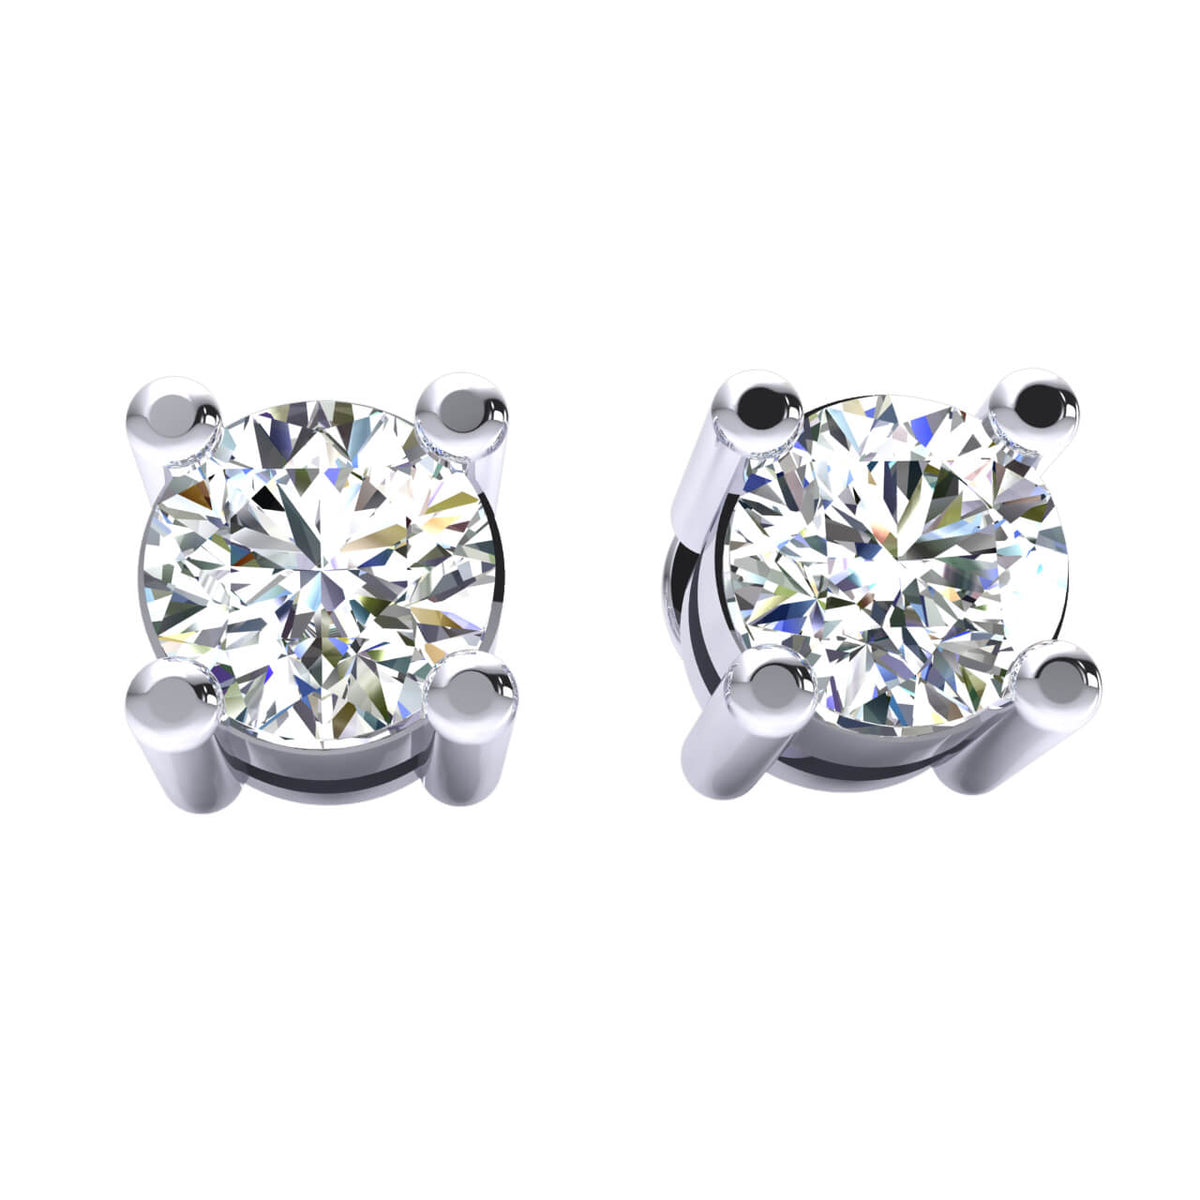 0.33 Ct Solitaire Round GH I1-I2 Diamond Stud Earrings For Adults 925 Sterling Silver